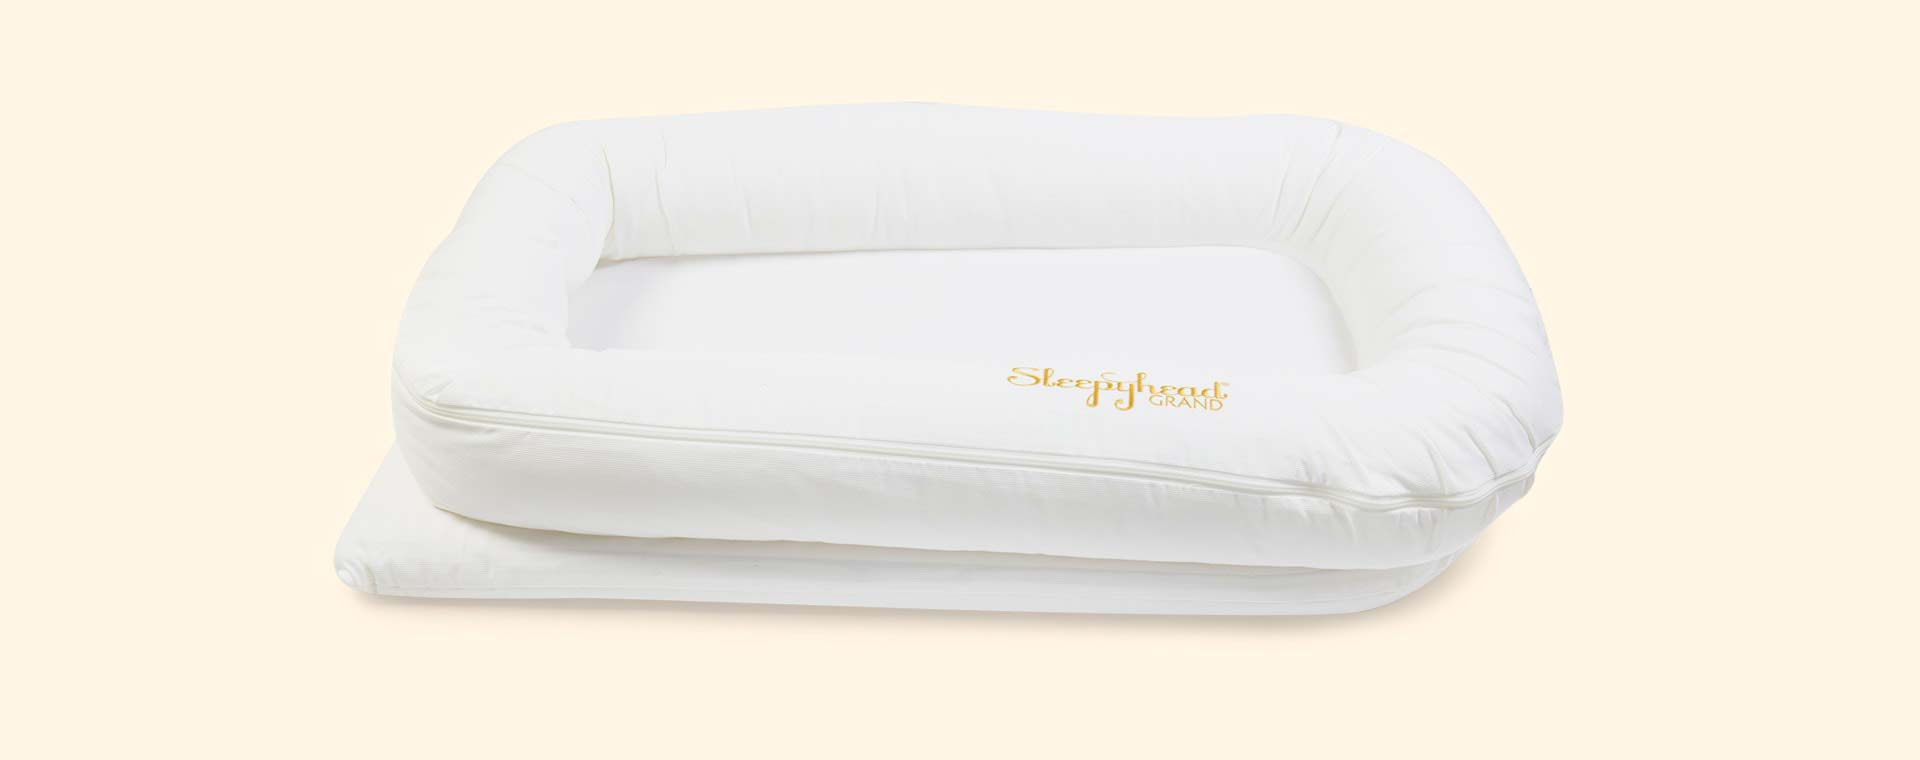 Pristine White Sleepyhead Grand Baby Pod